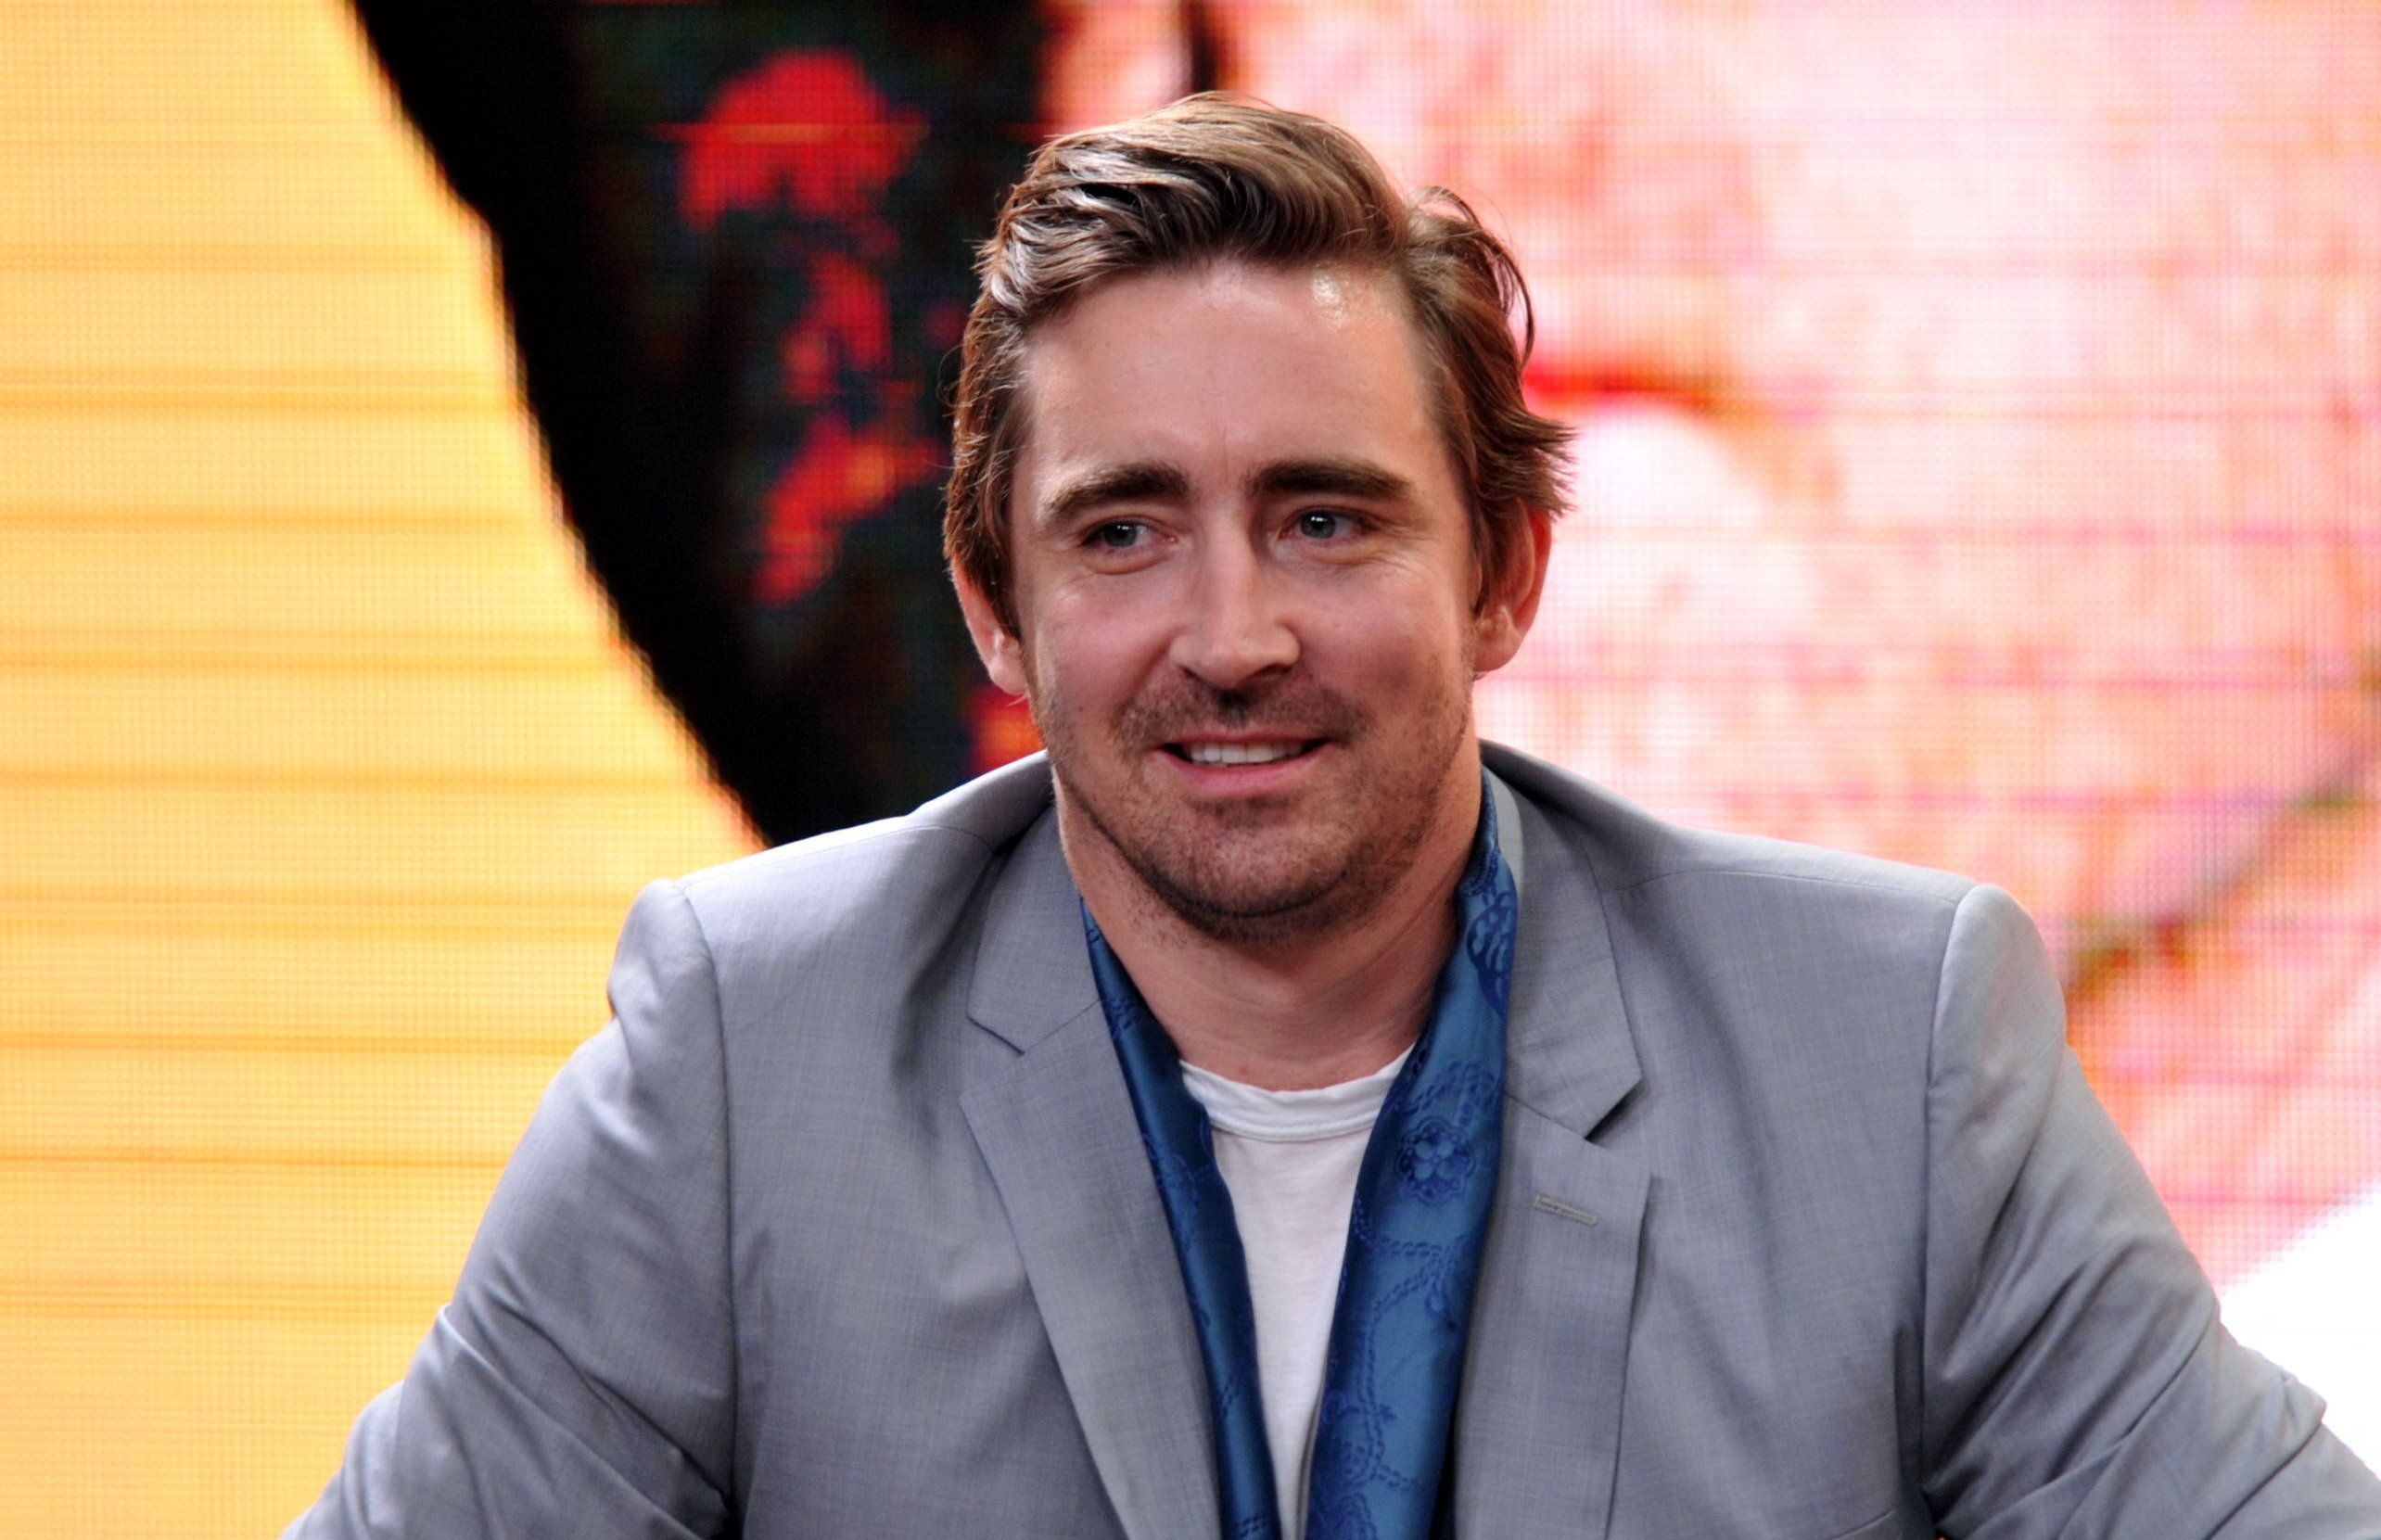 Lee Pace has been known to keep tight-lipped about his private